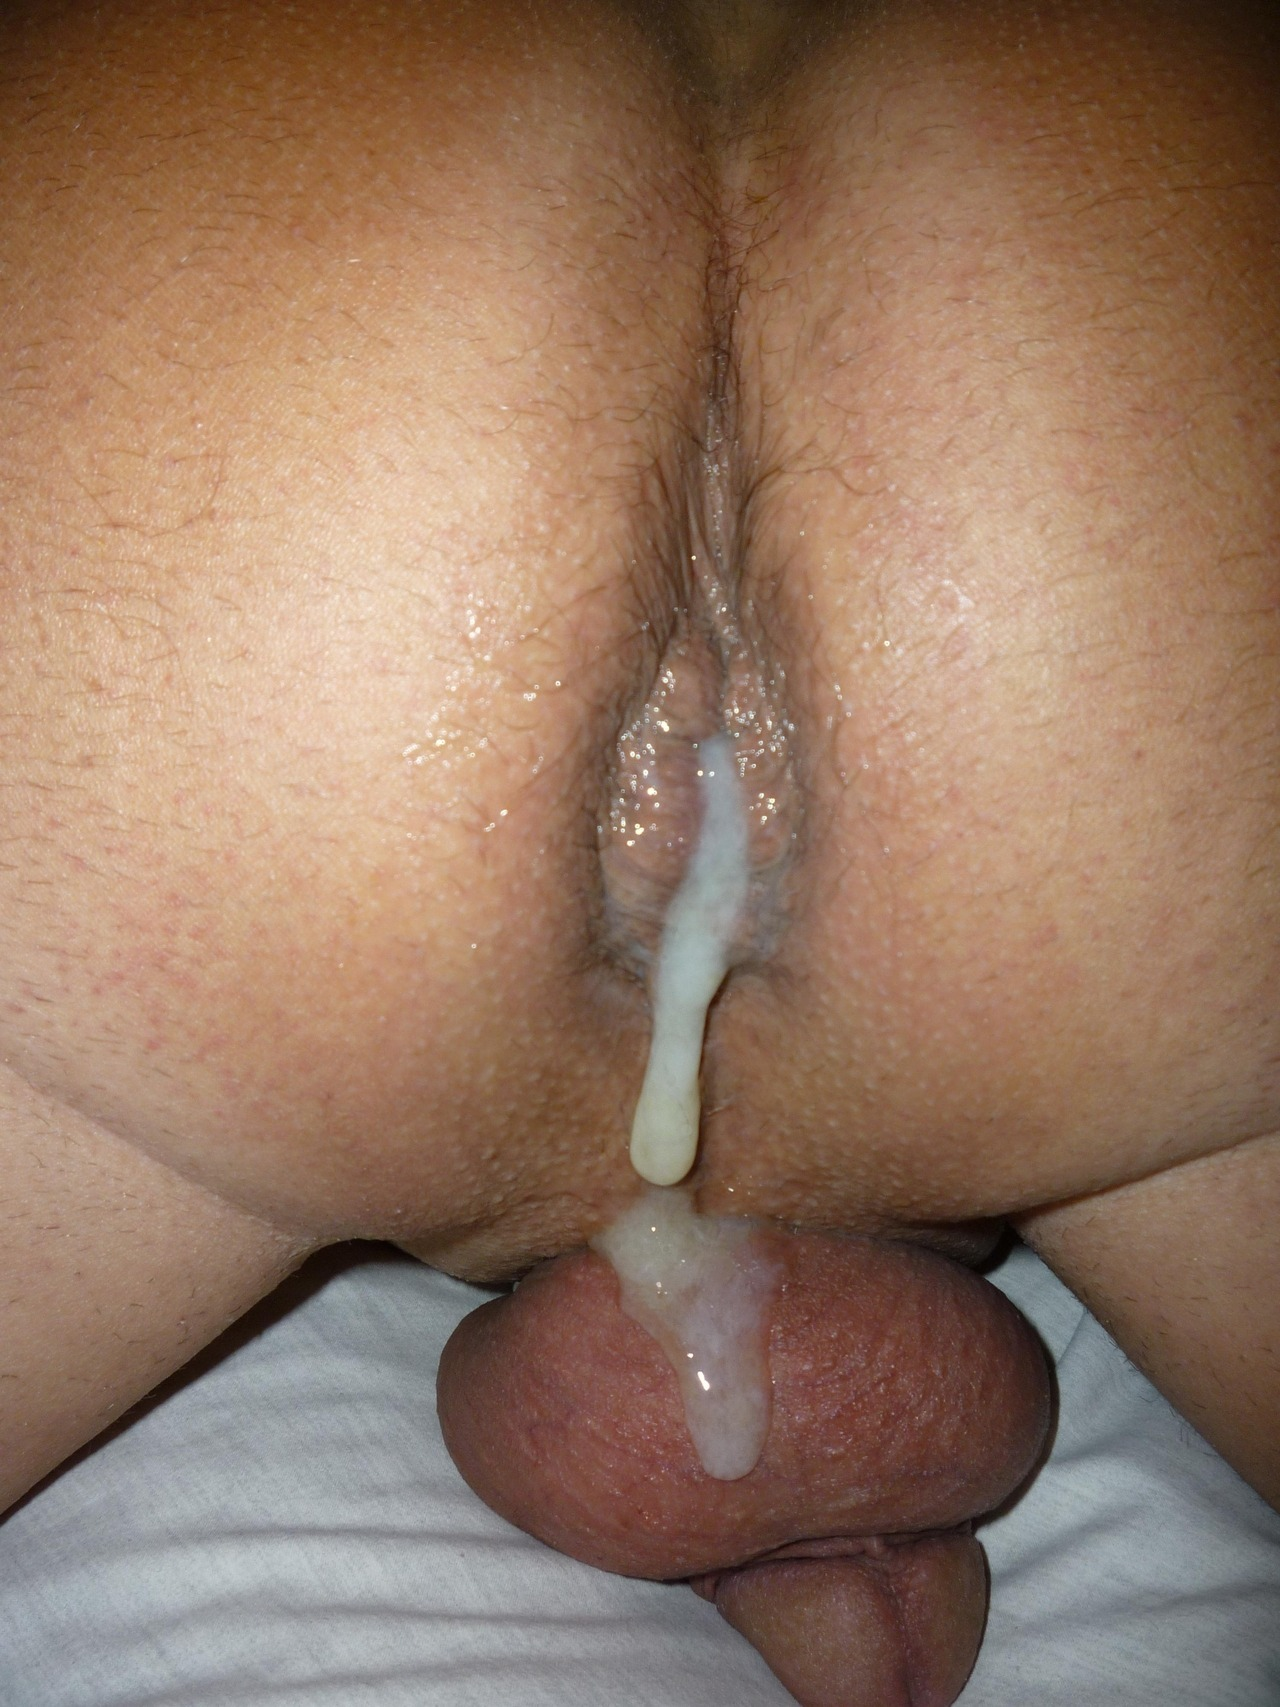 on tumblr creampie